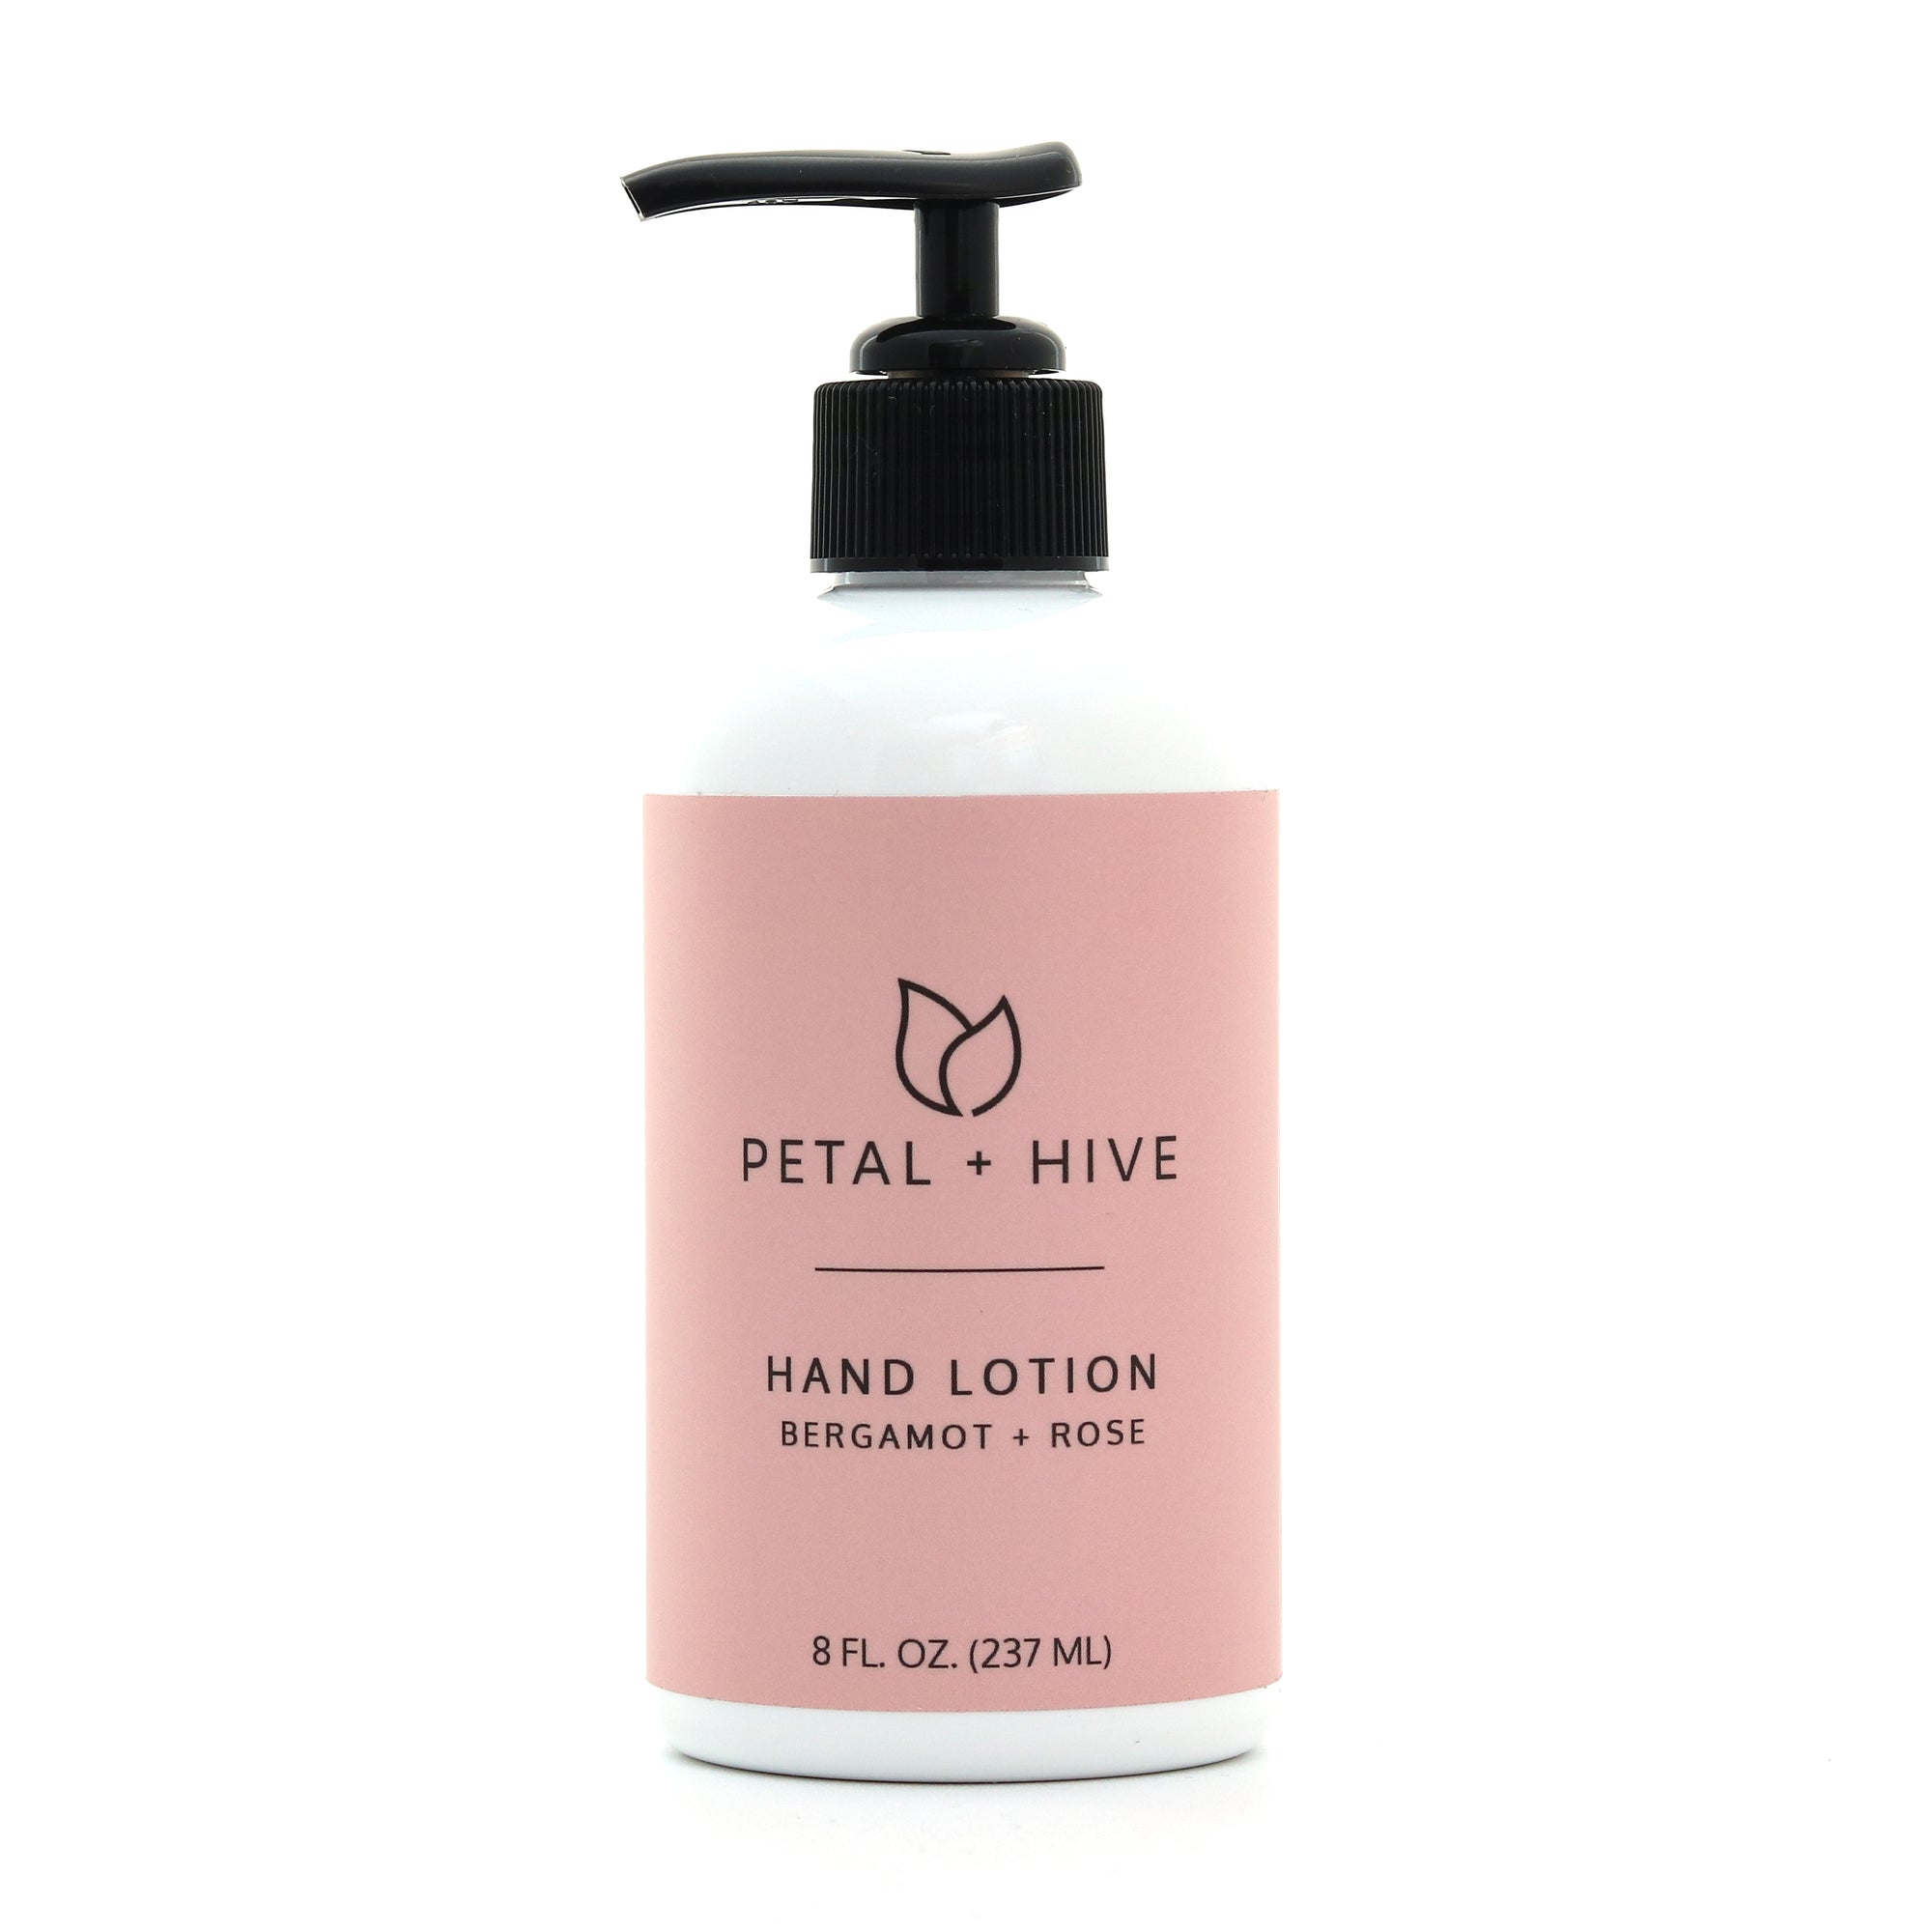 Bergamot + Rose Hydrating Hand Lotion